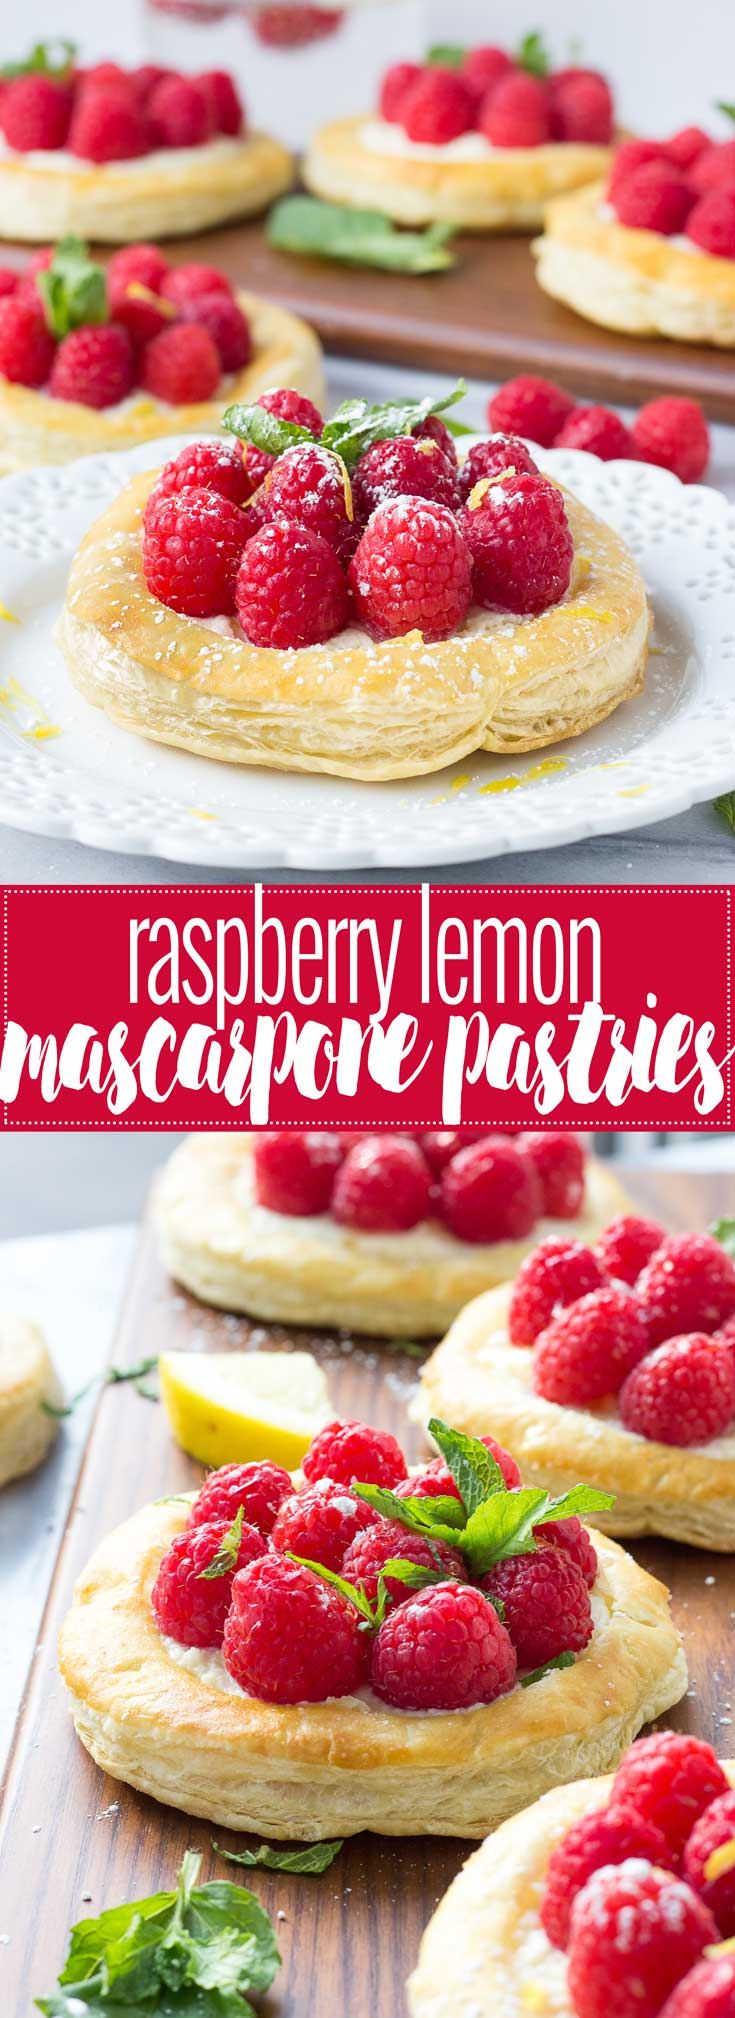 Raspberry Lemon Mascarpone Pastries - Light, flaky Puff Pastry Sheets filled with creamy mascarpone and lemon zest, topped with ripe raspberries and fresh mint - THE recipe for spring brunch!